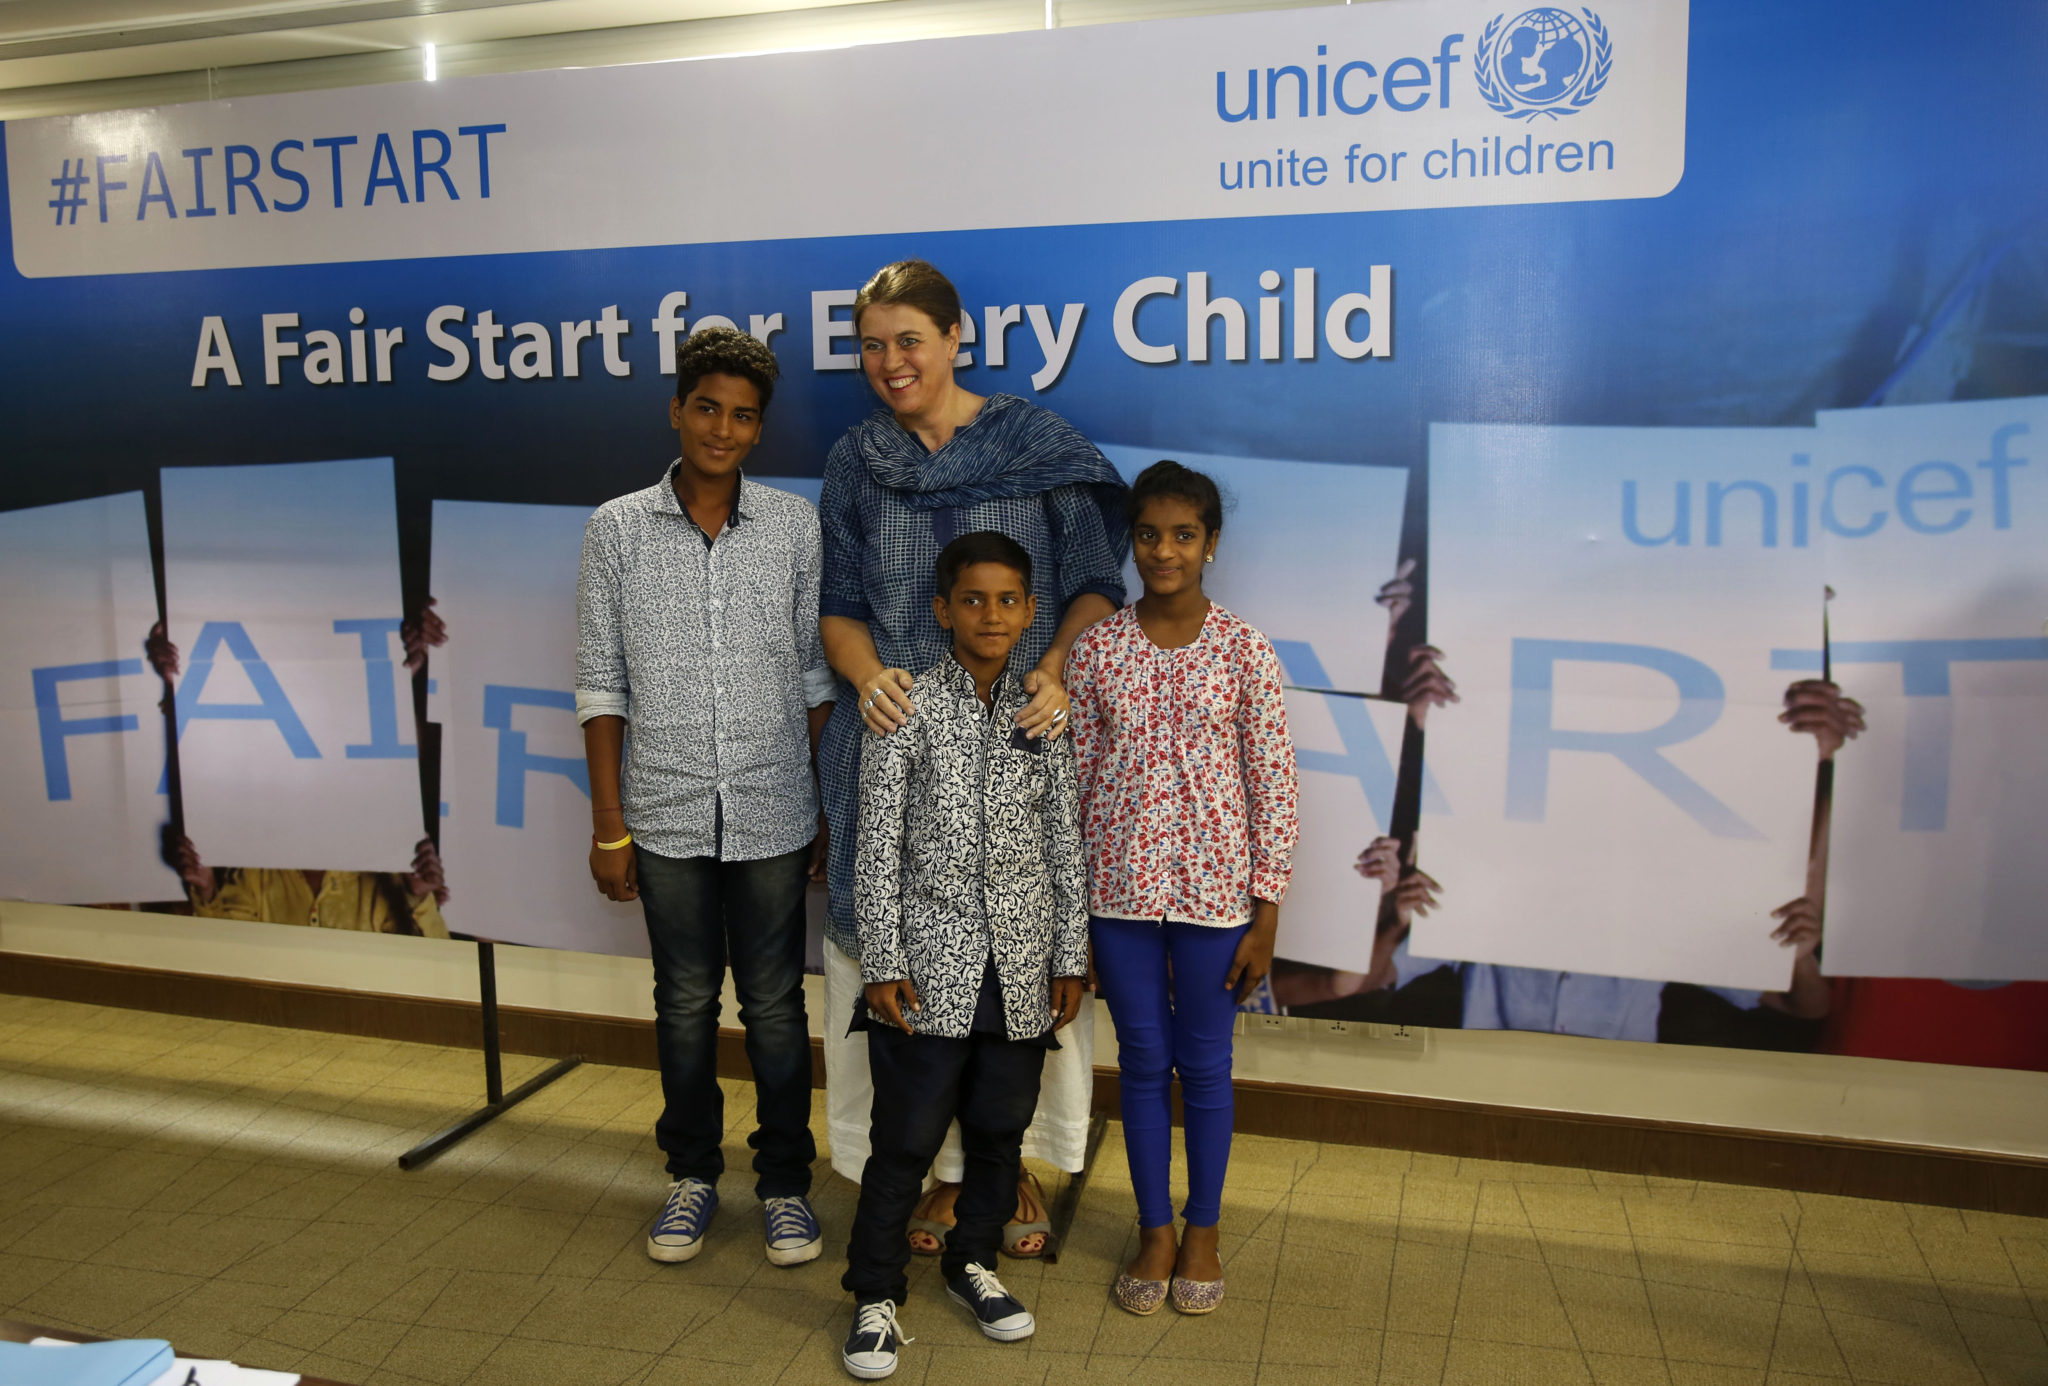 Chief Advocacy and Communication, Unicef India, Caraline Den Dulk, centre, poses with the crew of #FairStart campaign, Cameraman Sahil, left, Art Director Suraj, centre foreground, and Costume organiser Belinda after a press conference in New Delhi, India, Wednesday, May 25, 2016. Photographer/ Mustafa Quraishi